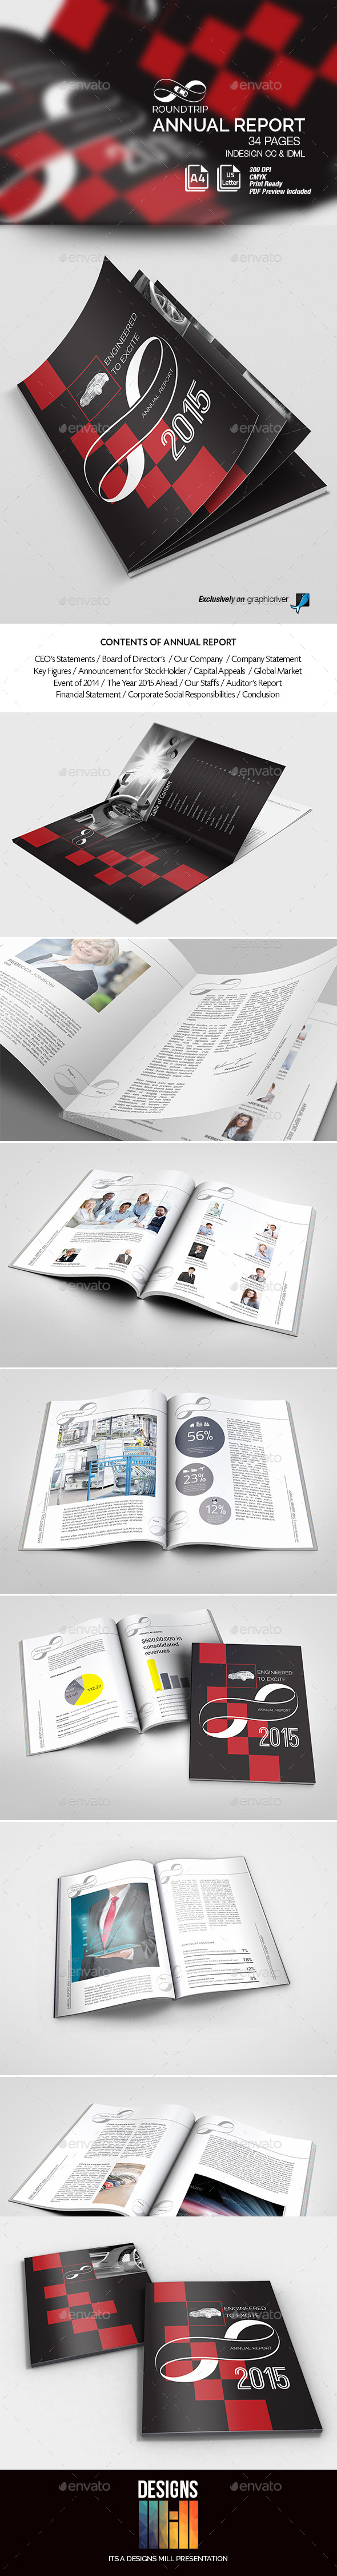 GraphicRiver Round Trip Annual Report 8837925